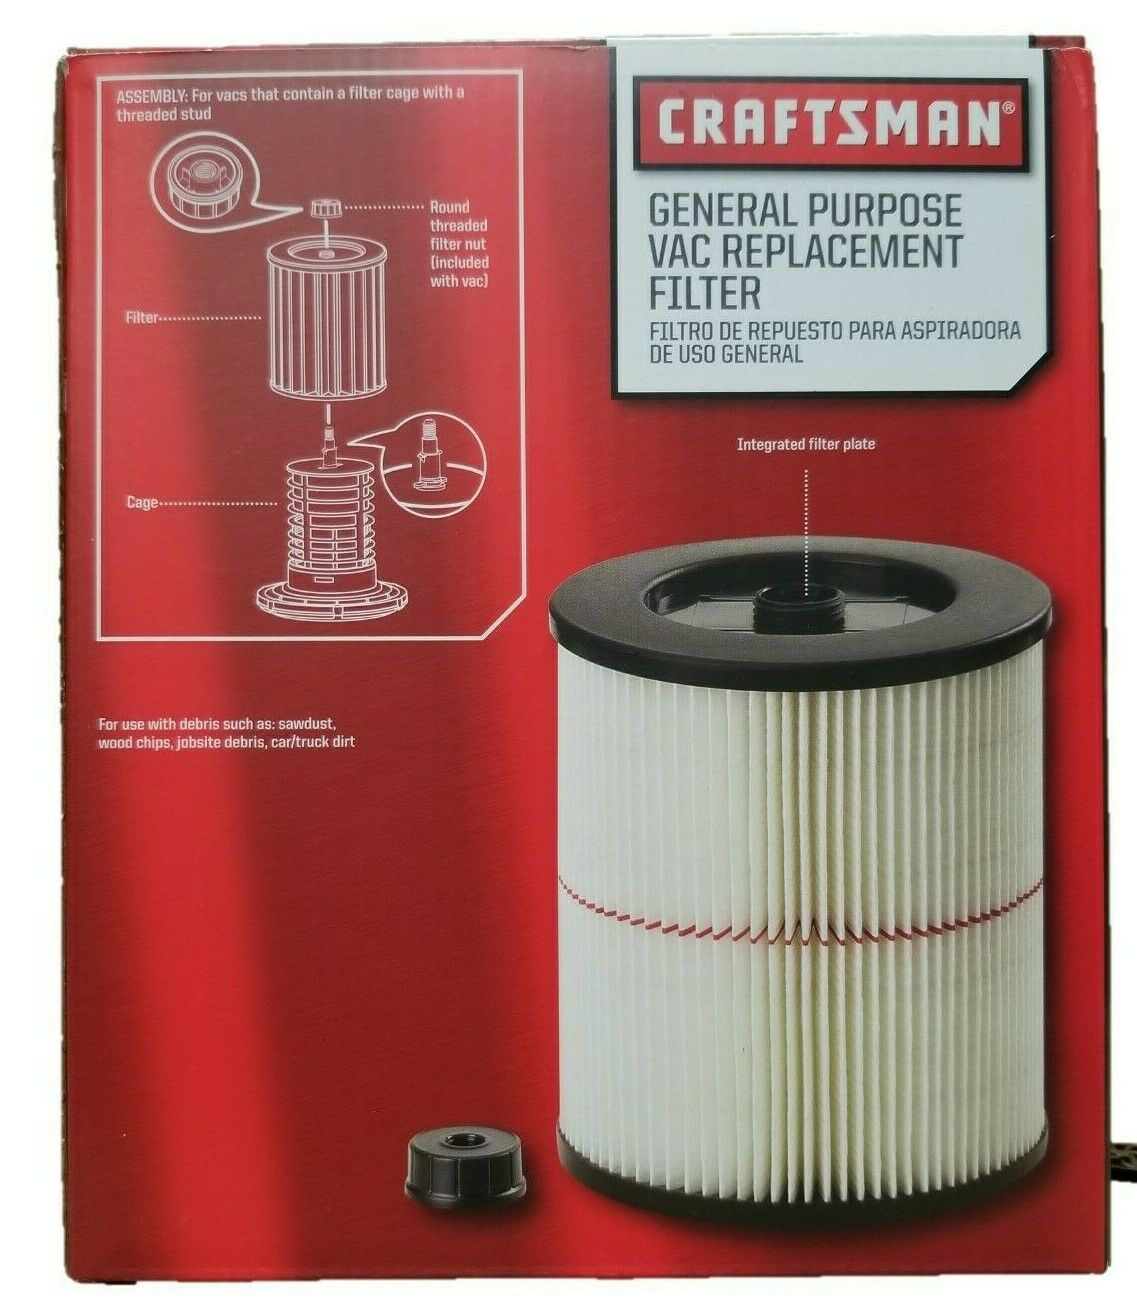 Craftsman 9-17816 OEM Filter Fits Current Craftsman Vacuums 5 Gallons and Above